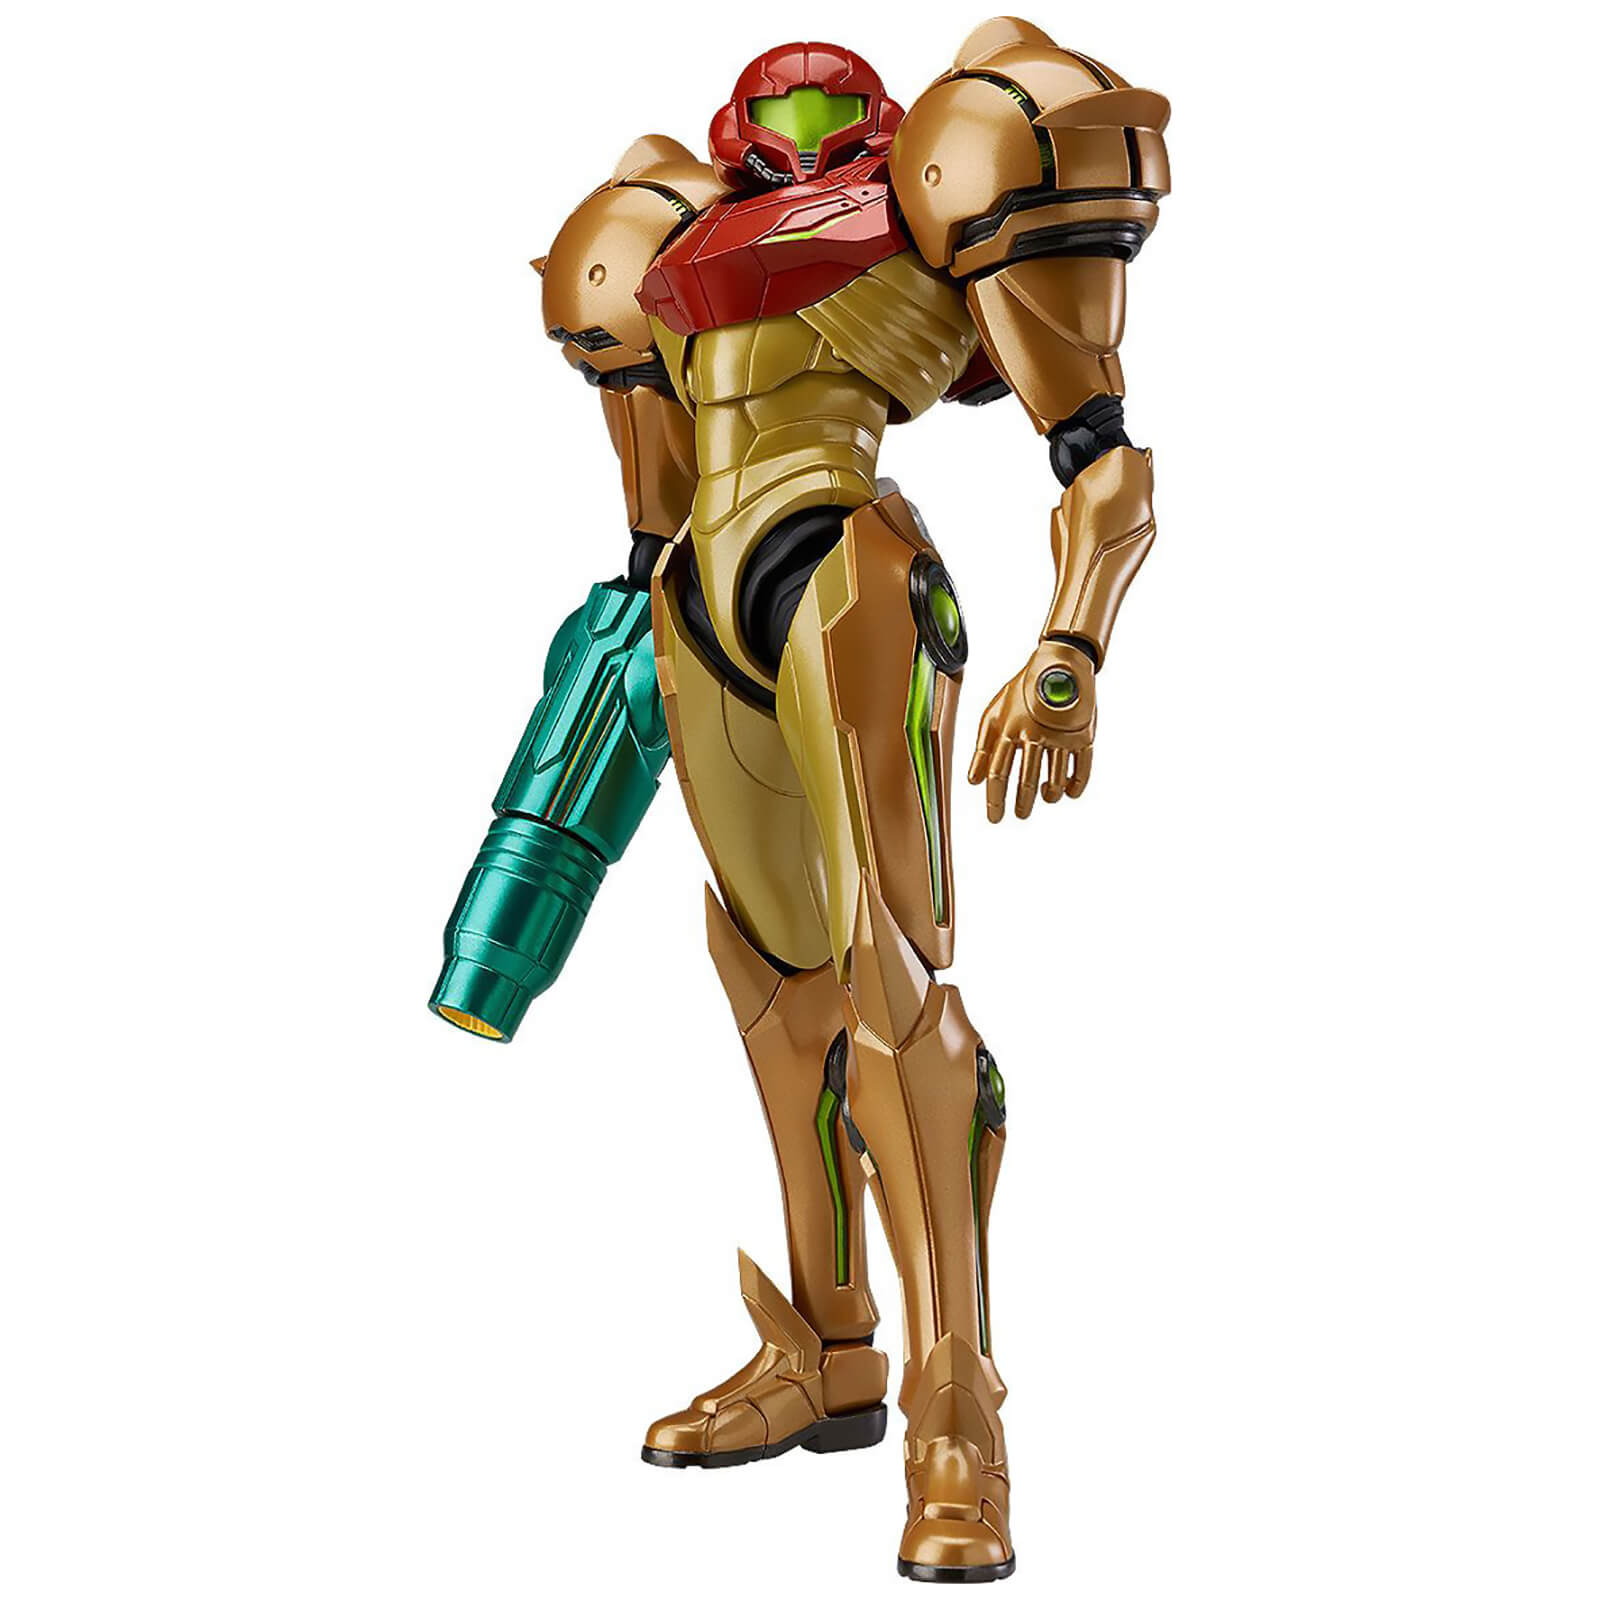 Metroid Prime 3 Corruption Figma Action Figure Samus Aran Prime 3 Ver. 16 cm